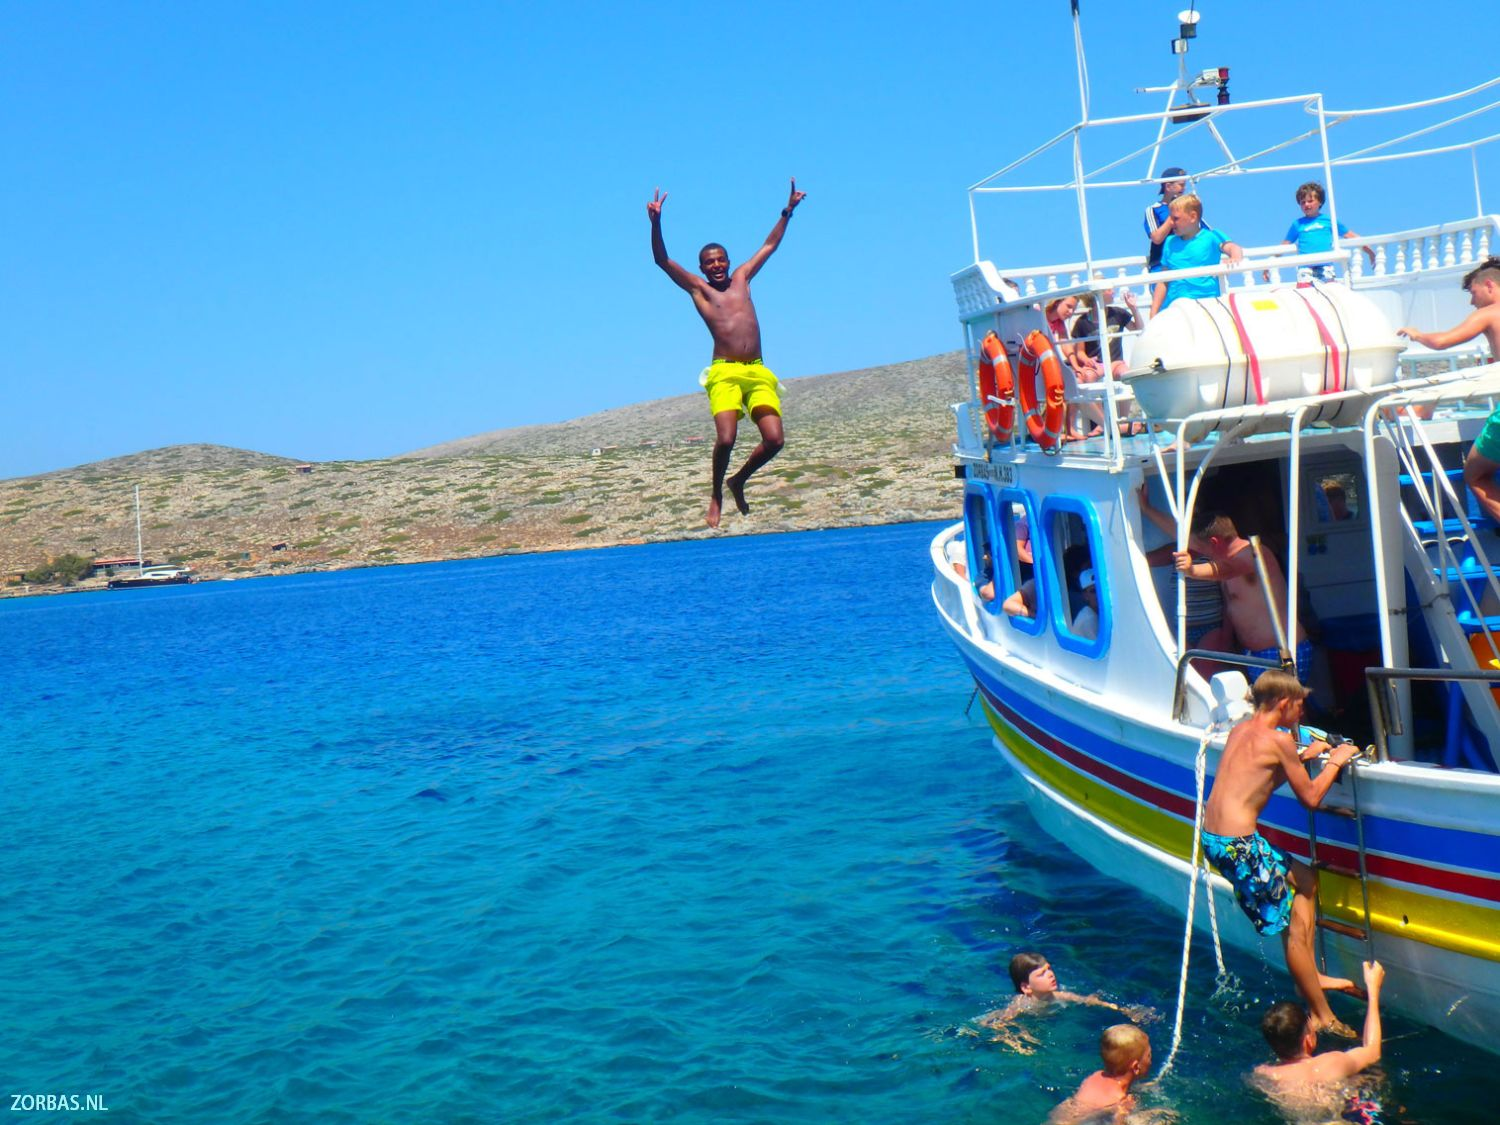 Holidays On Crete Greece Apartment Rental And Accommodation All Year Round It Is The Perfect Place For Family Apartments Holiday Homes